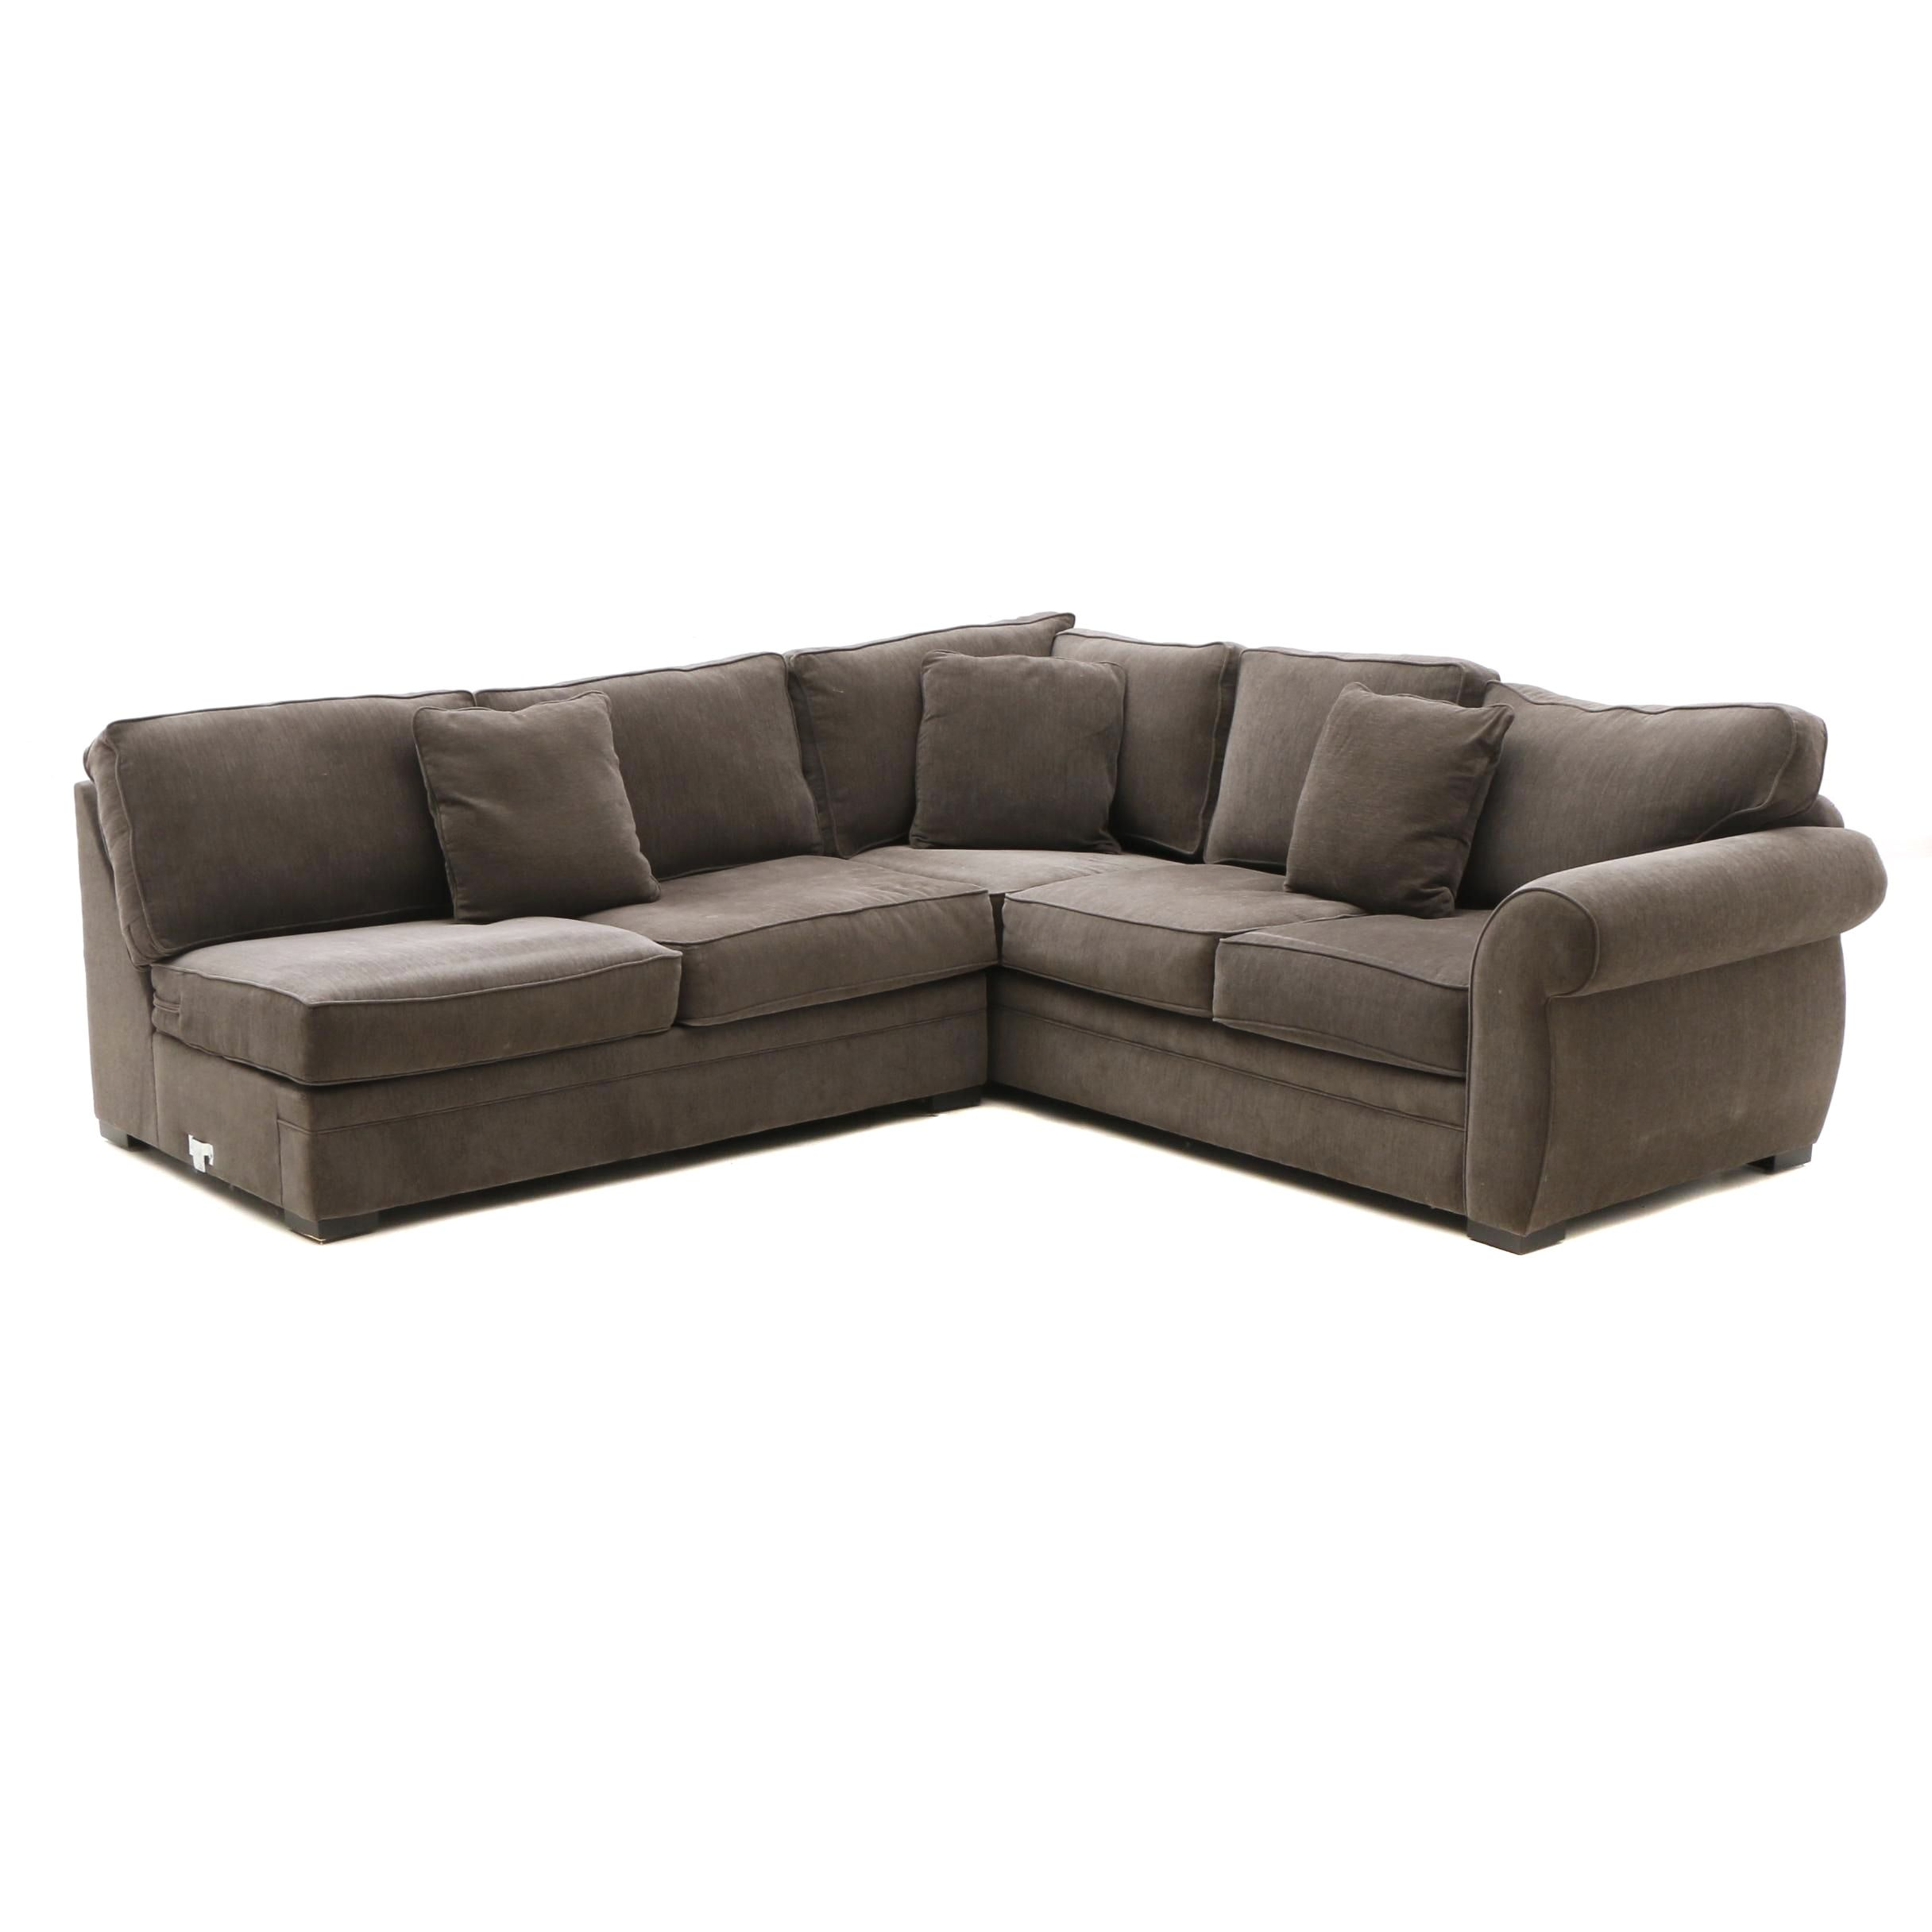 Two-Piece Sectional Sofa in Gray by Jonathan Louis Inc.